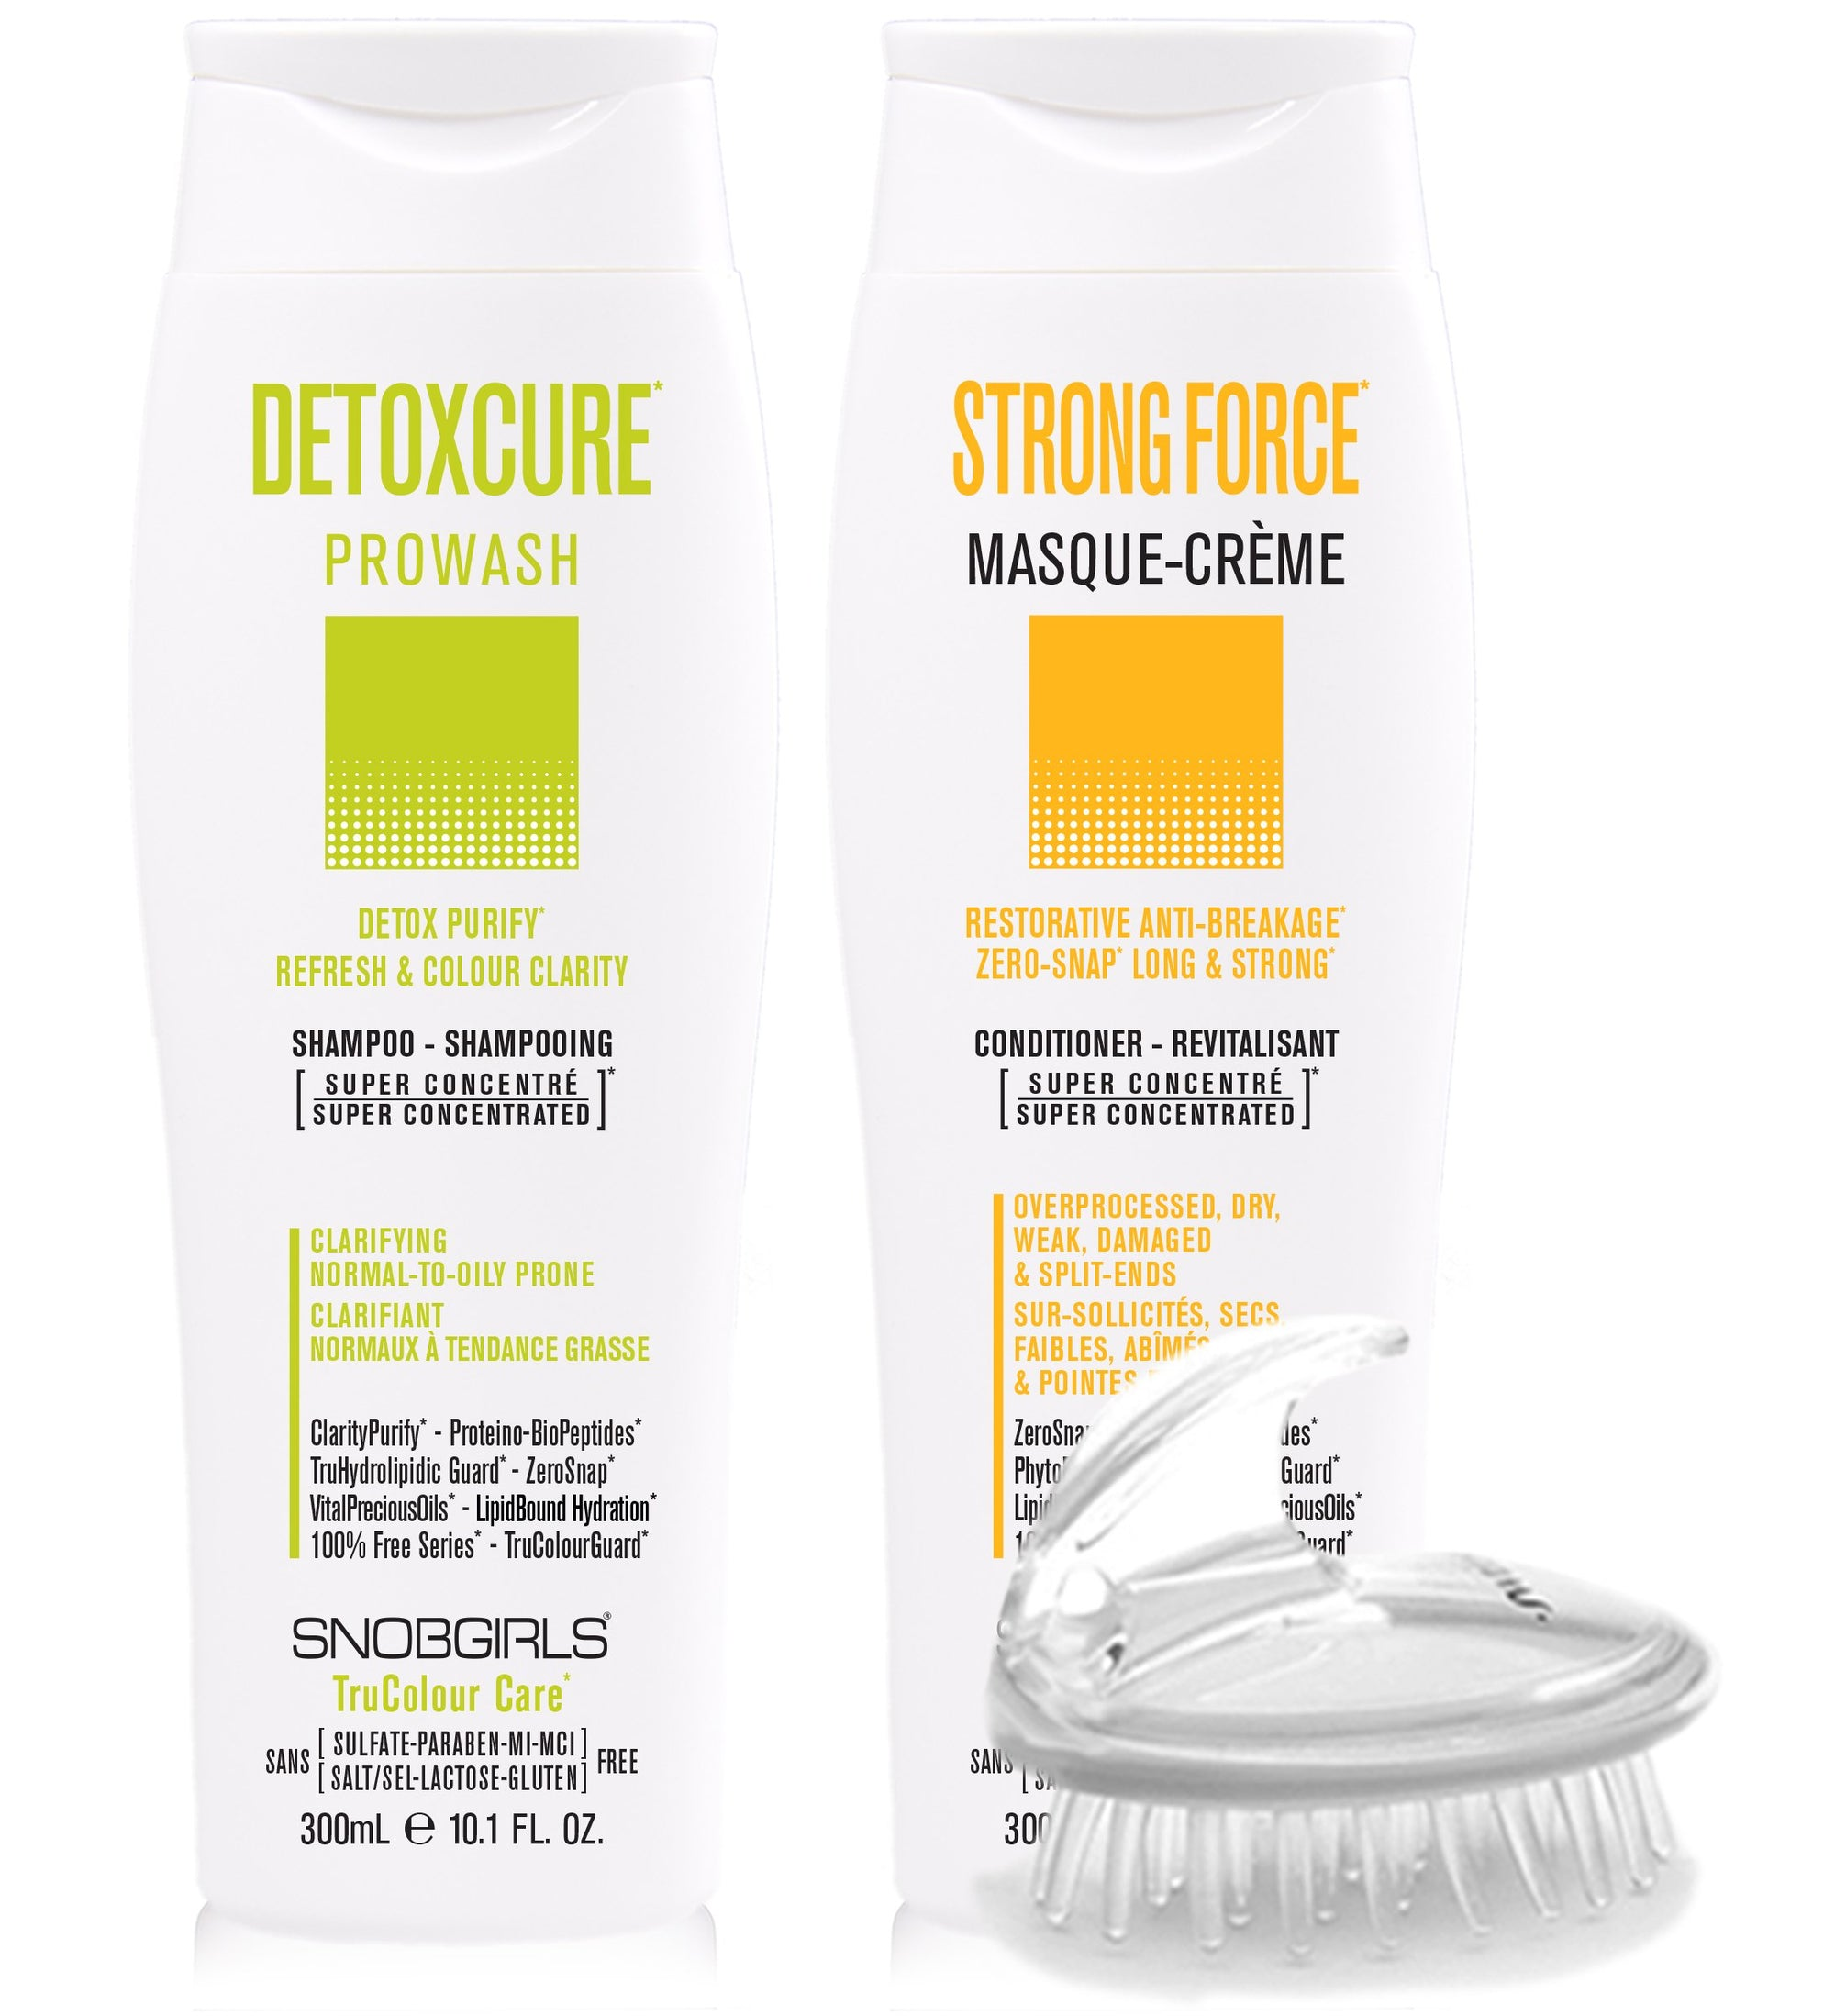 DUO - DETOXCURE Prowash + STRONGFORCE Masque-Creme 300 mL + Shampoo Brush - SNOBGIRLS Canada